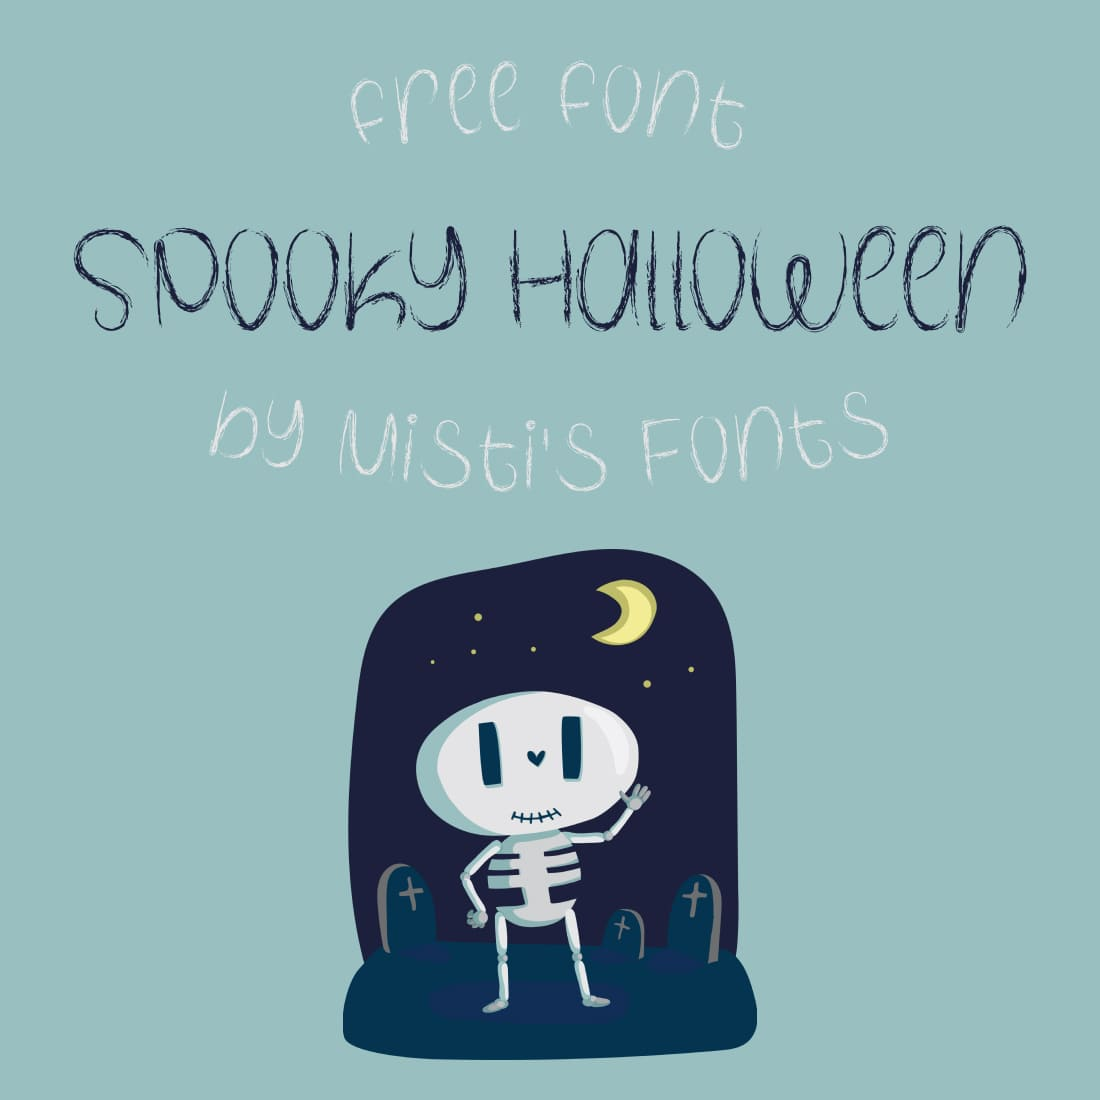 Free Spooky Halloween Font Cute Cover Collage Image.